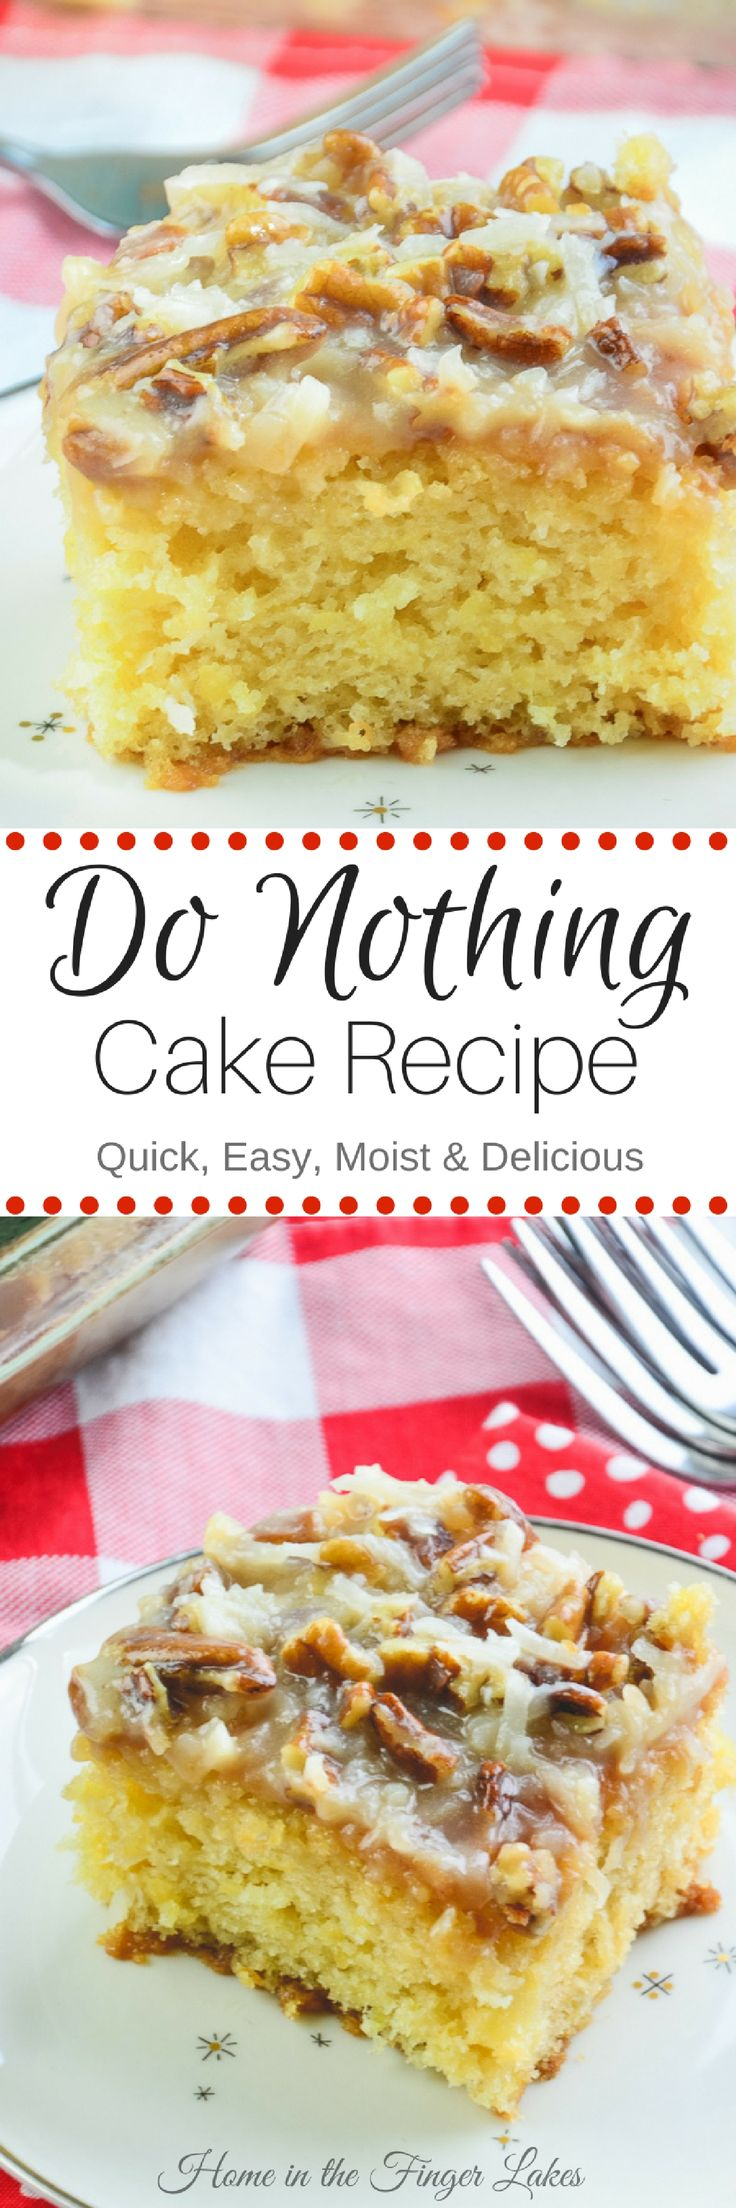 Looking for a quick and easy dessert to feed a crowd? This is your recipe! Do Nothing Cake is made from scratch with delicious results every time.  via @homeinFLX